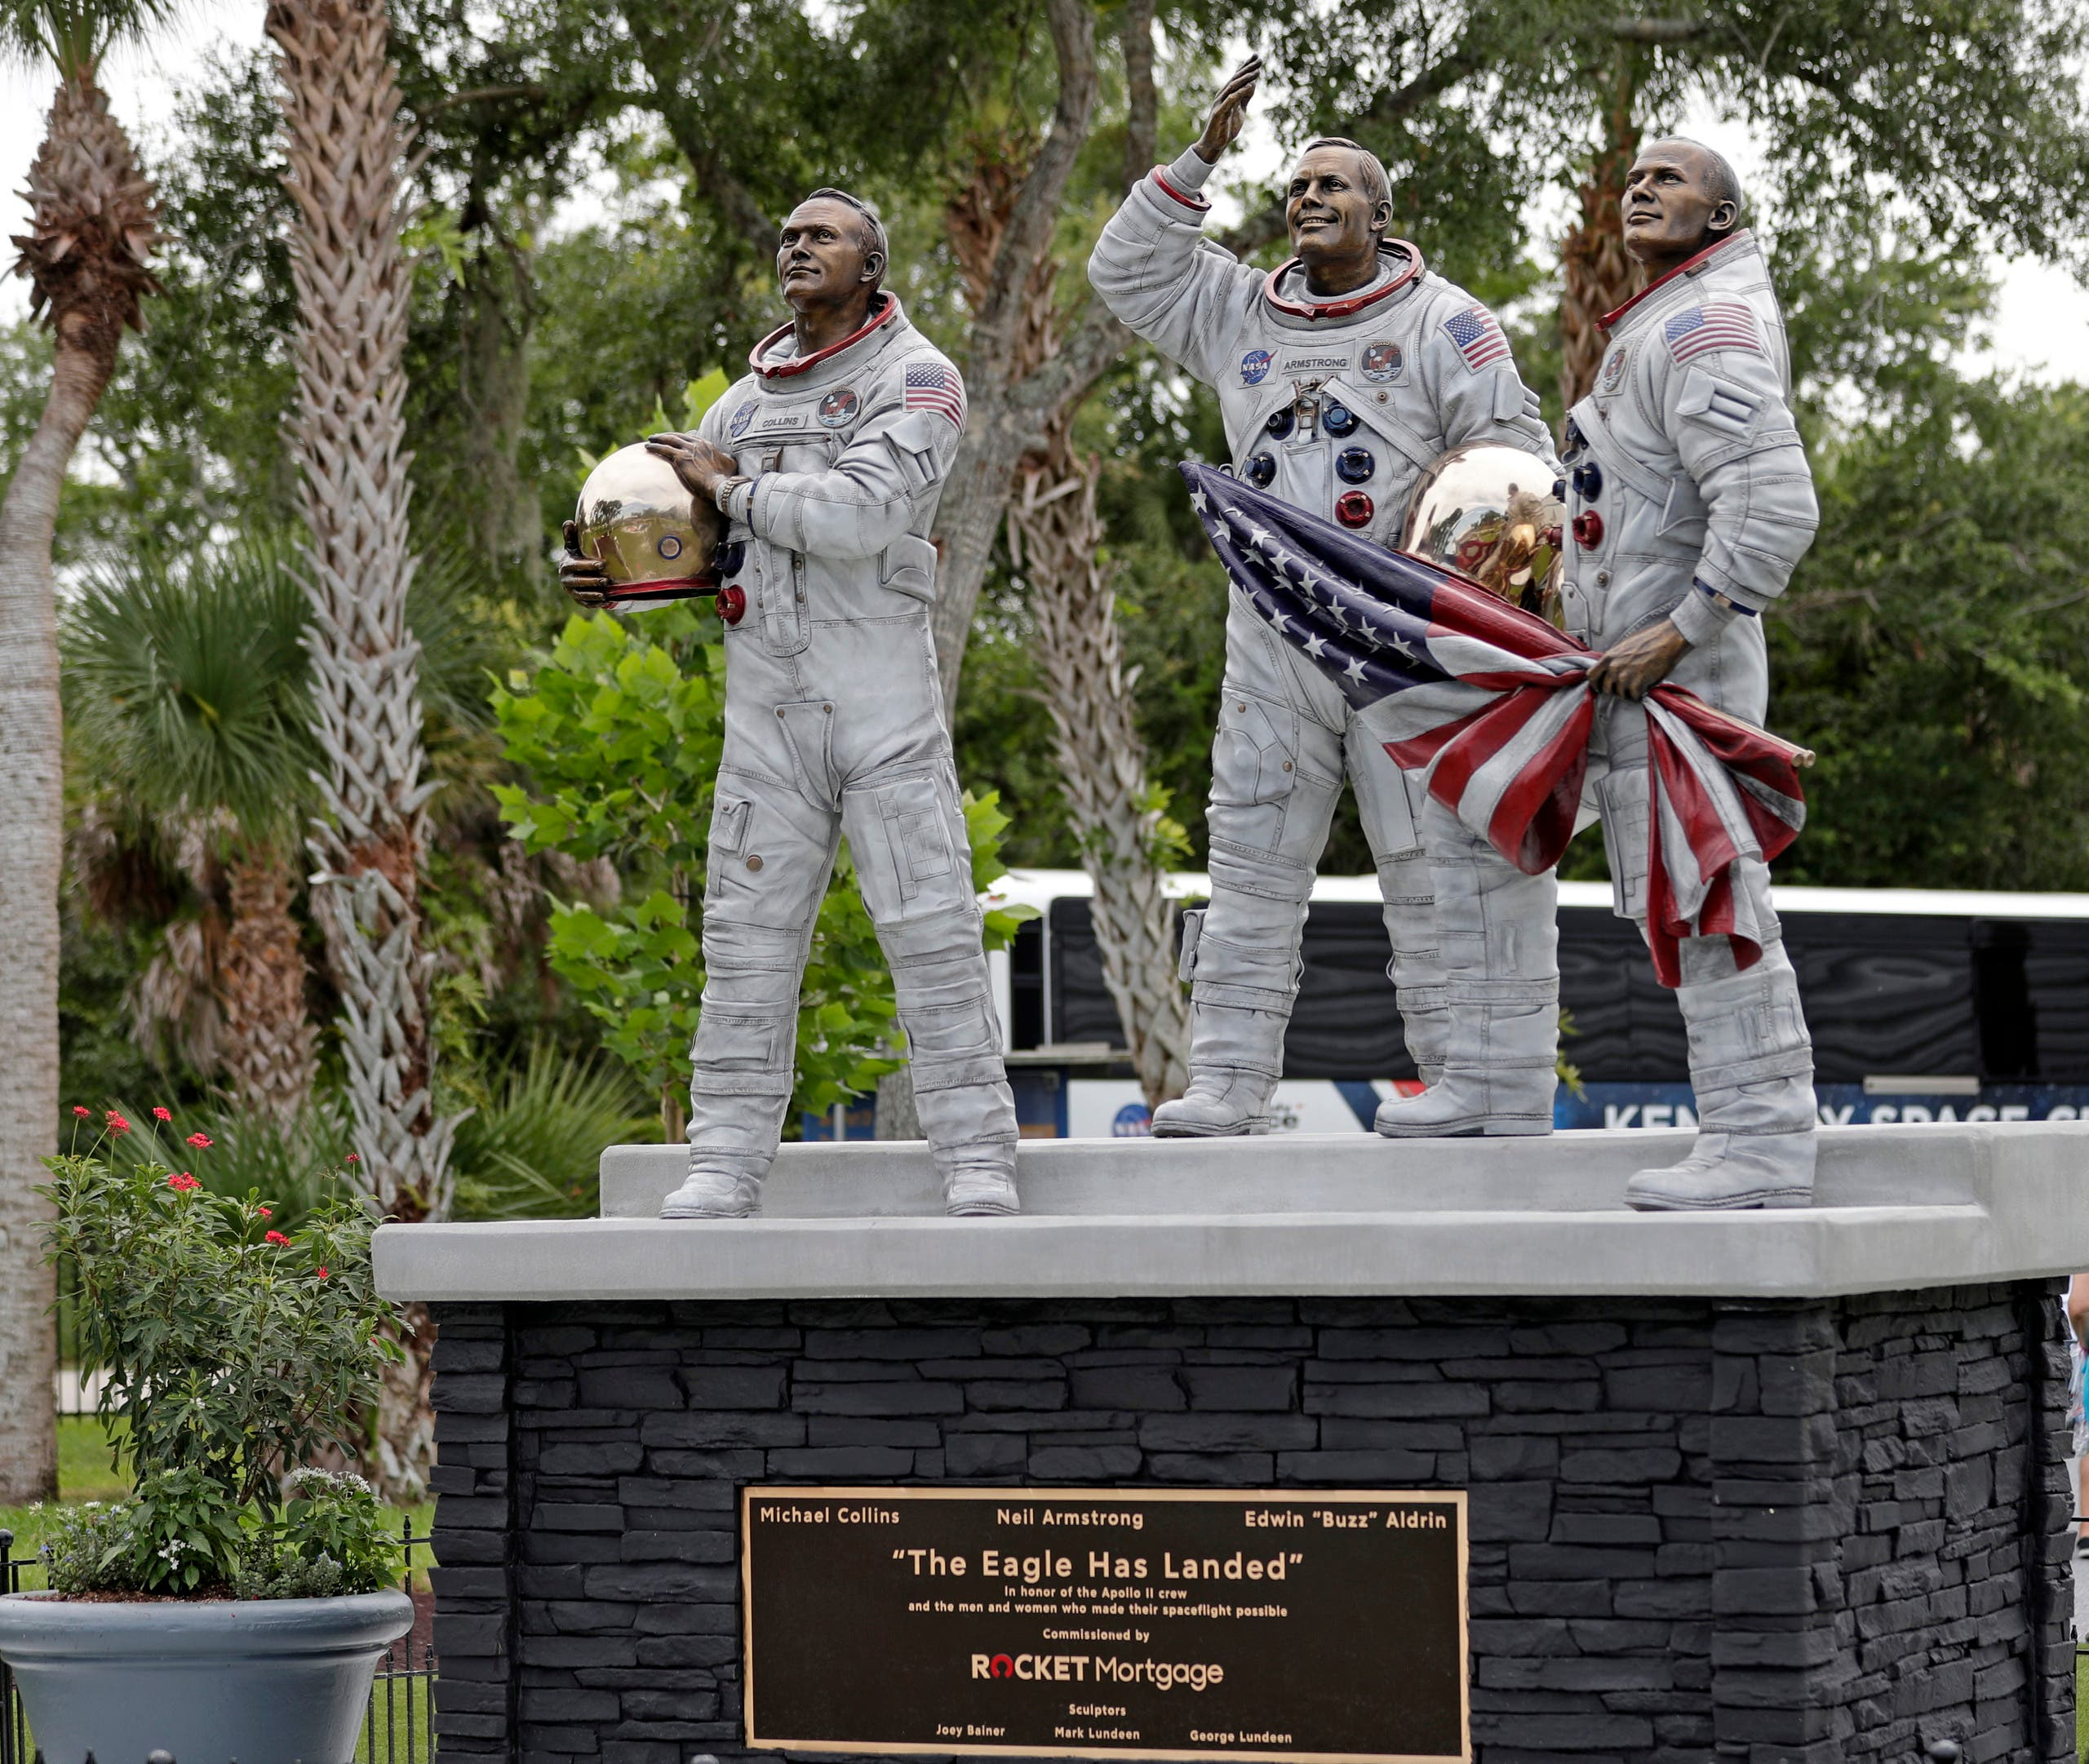 The new Apollo 11 statue of the astronauts Michael Collins, Neil Armstrong and Buzz Aldrin is seen at the Kennedy Space Center Visitor Complex. (AP)